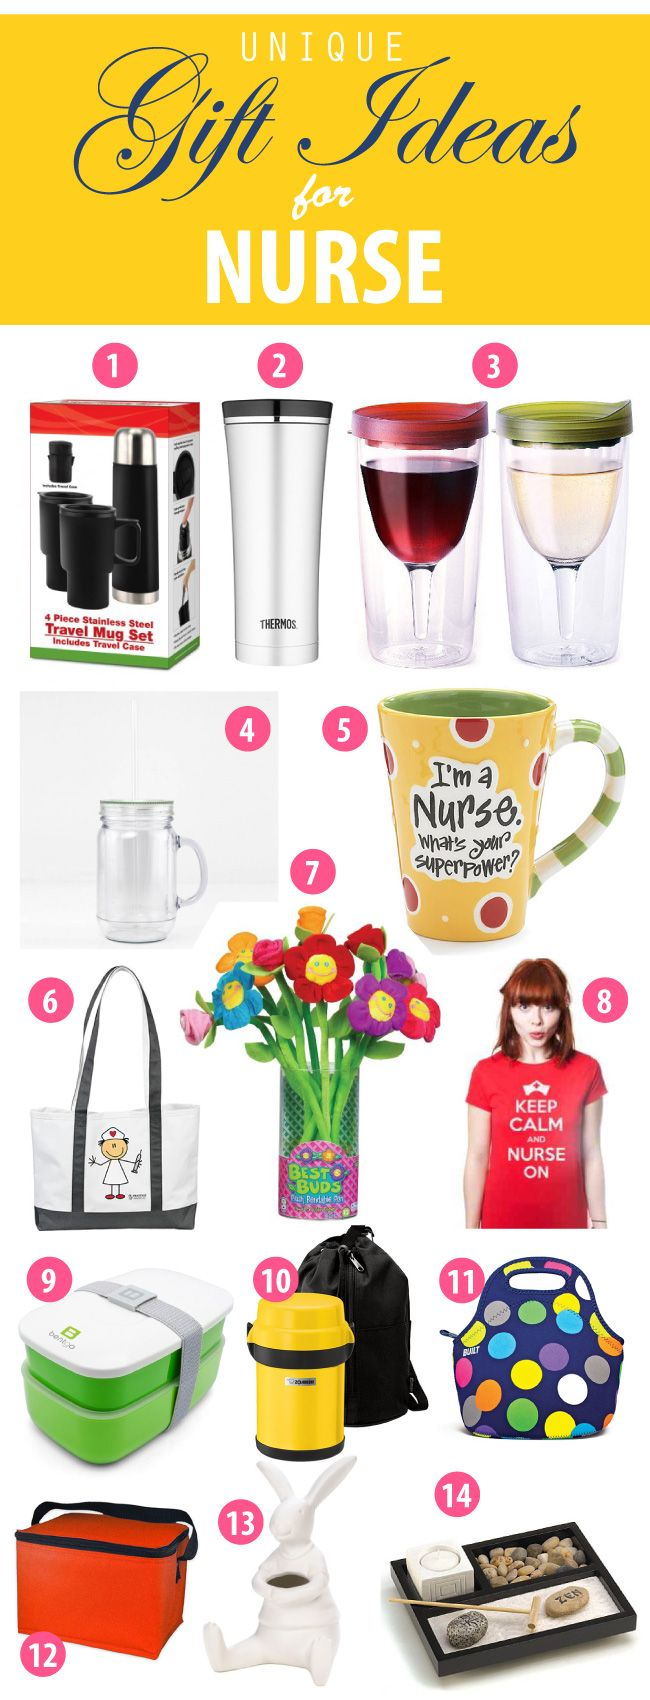 Nurse gifts + 14 great appreciation gifts for nurses #nurse http://vividgiftideas.com/2014/04/09/unique-national-nurses-week-gift-ideas-2014/